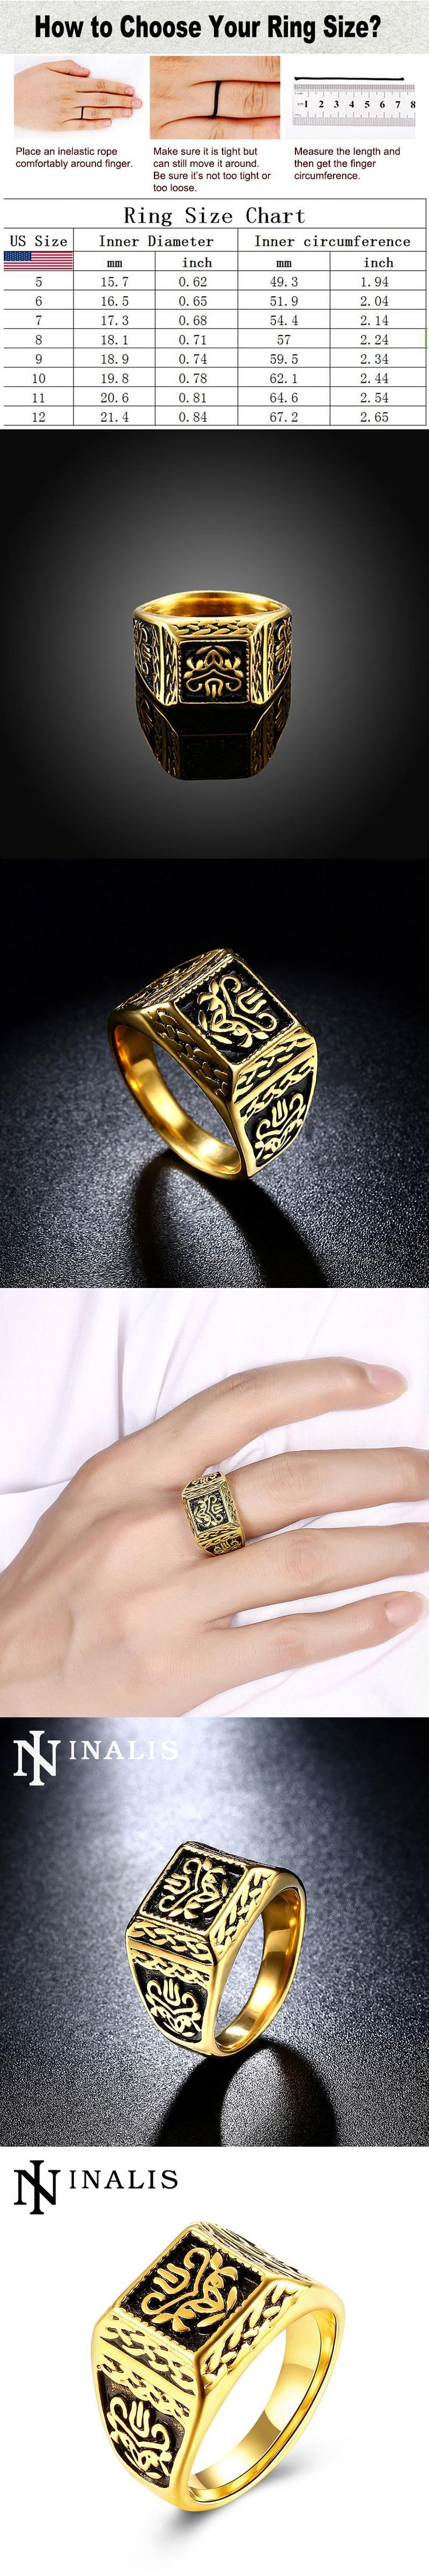 Luxury Gold-Color Stainless Titanium Steel Rings for Men Vintage Fashion Islam Ring High Quality Signet Ring Male Gift Size 9-11